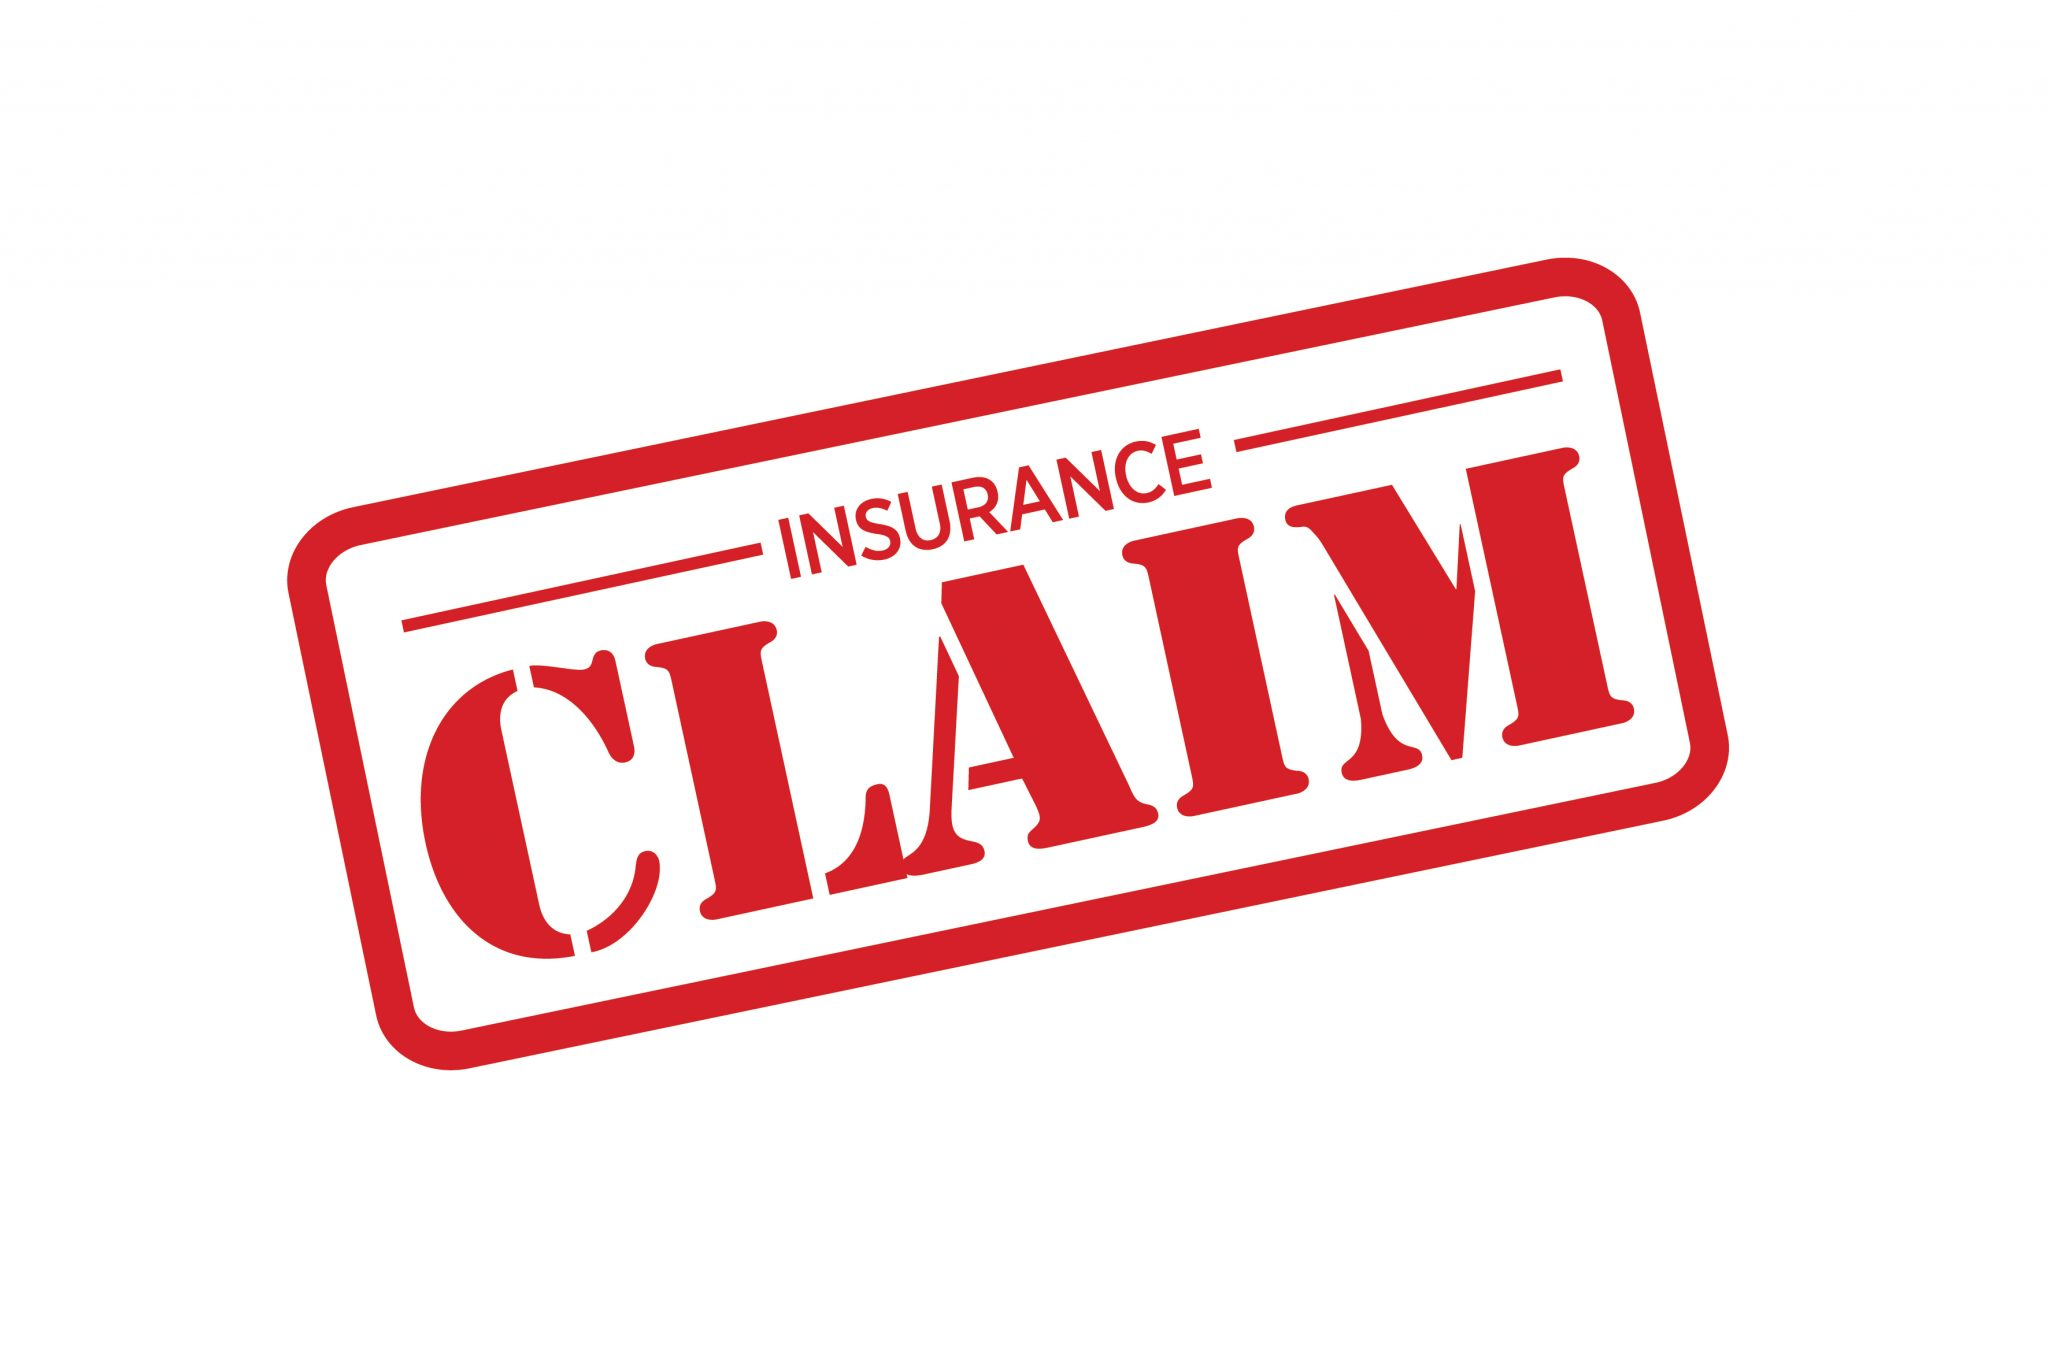 When and how to file a car insurance claim